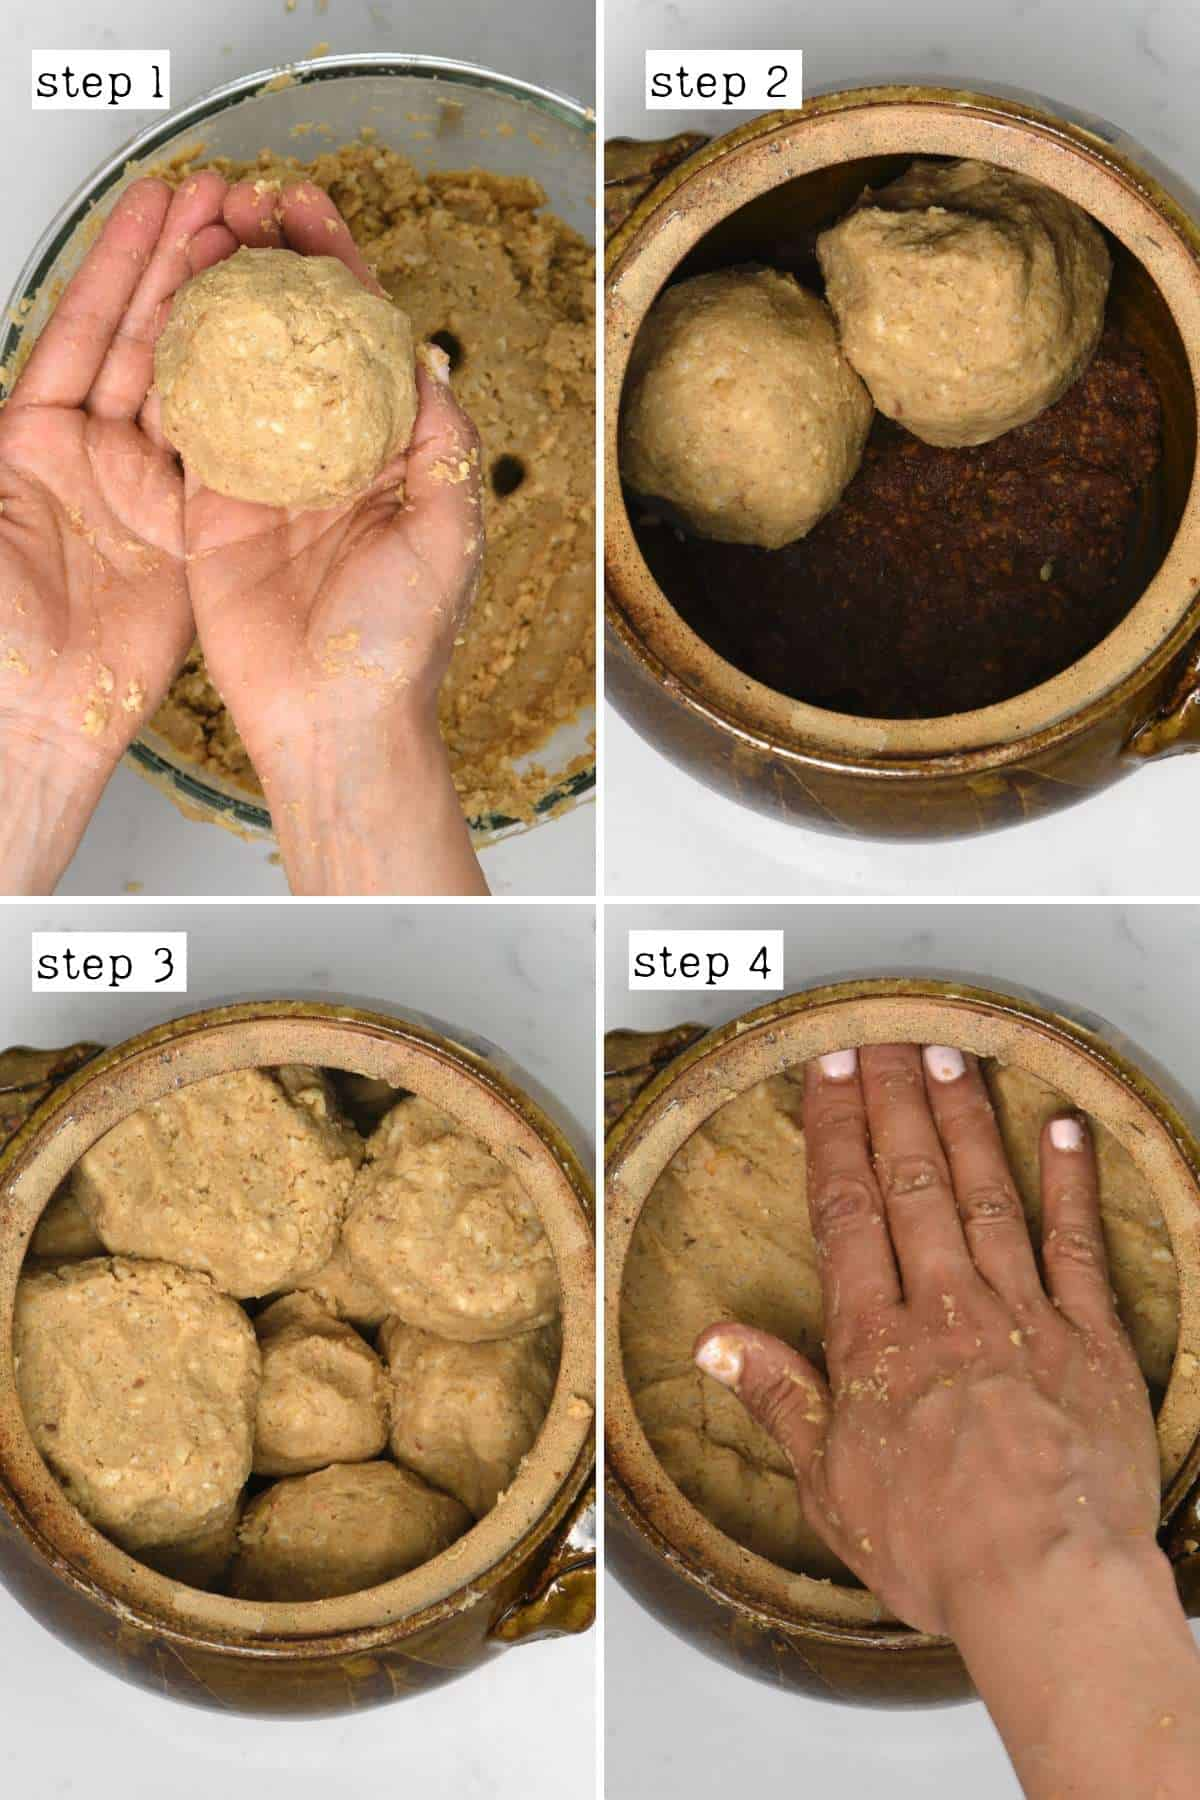 Steps for placing miso paste into a container